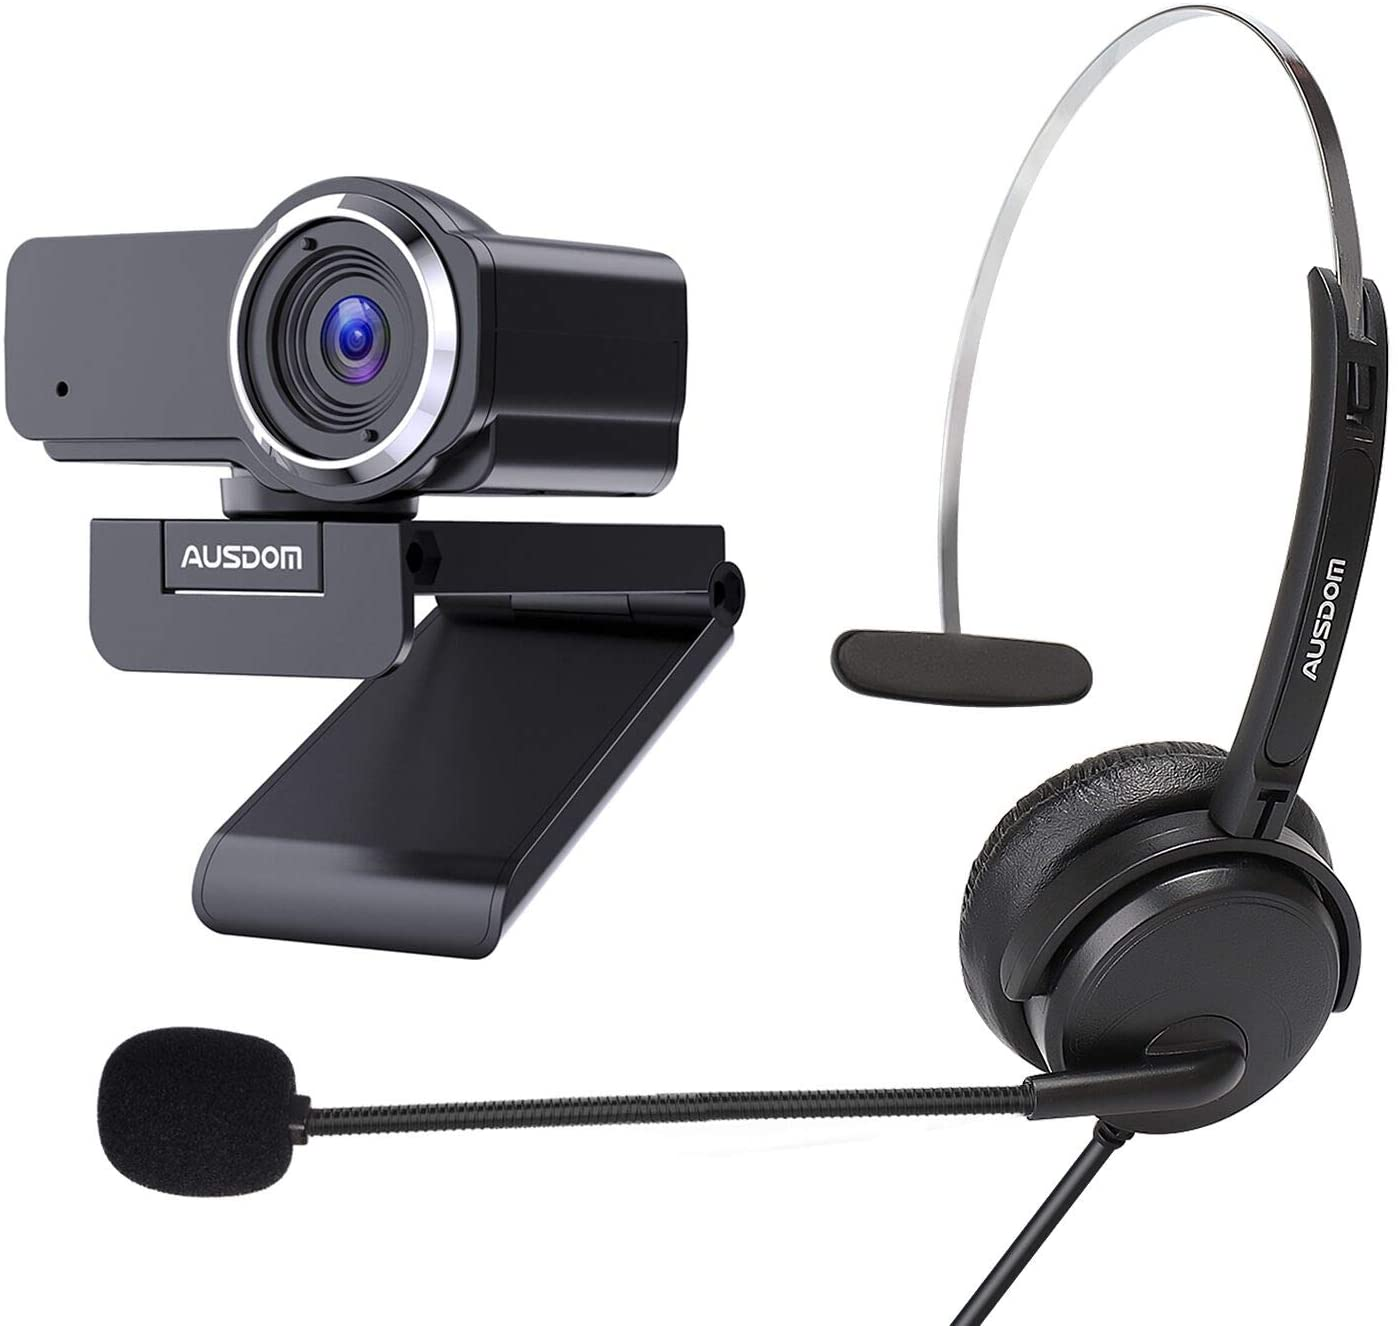 Bundle AUSDOM AW635 FHD 1080p Webcam and AUSDOM BH01 3.5mm Wired Telephone Headset for Work at Home PC Computer